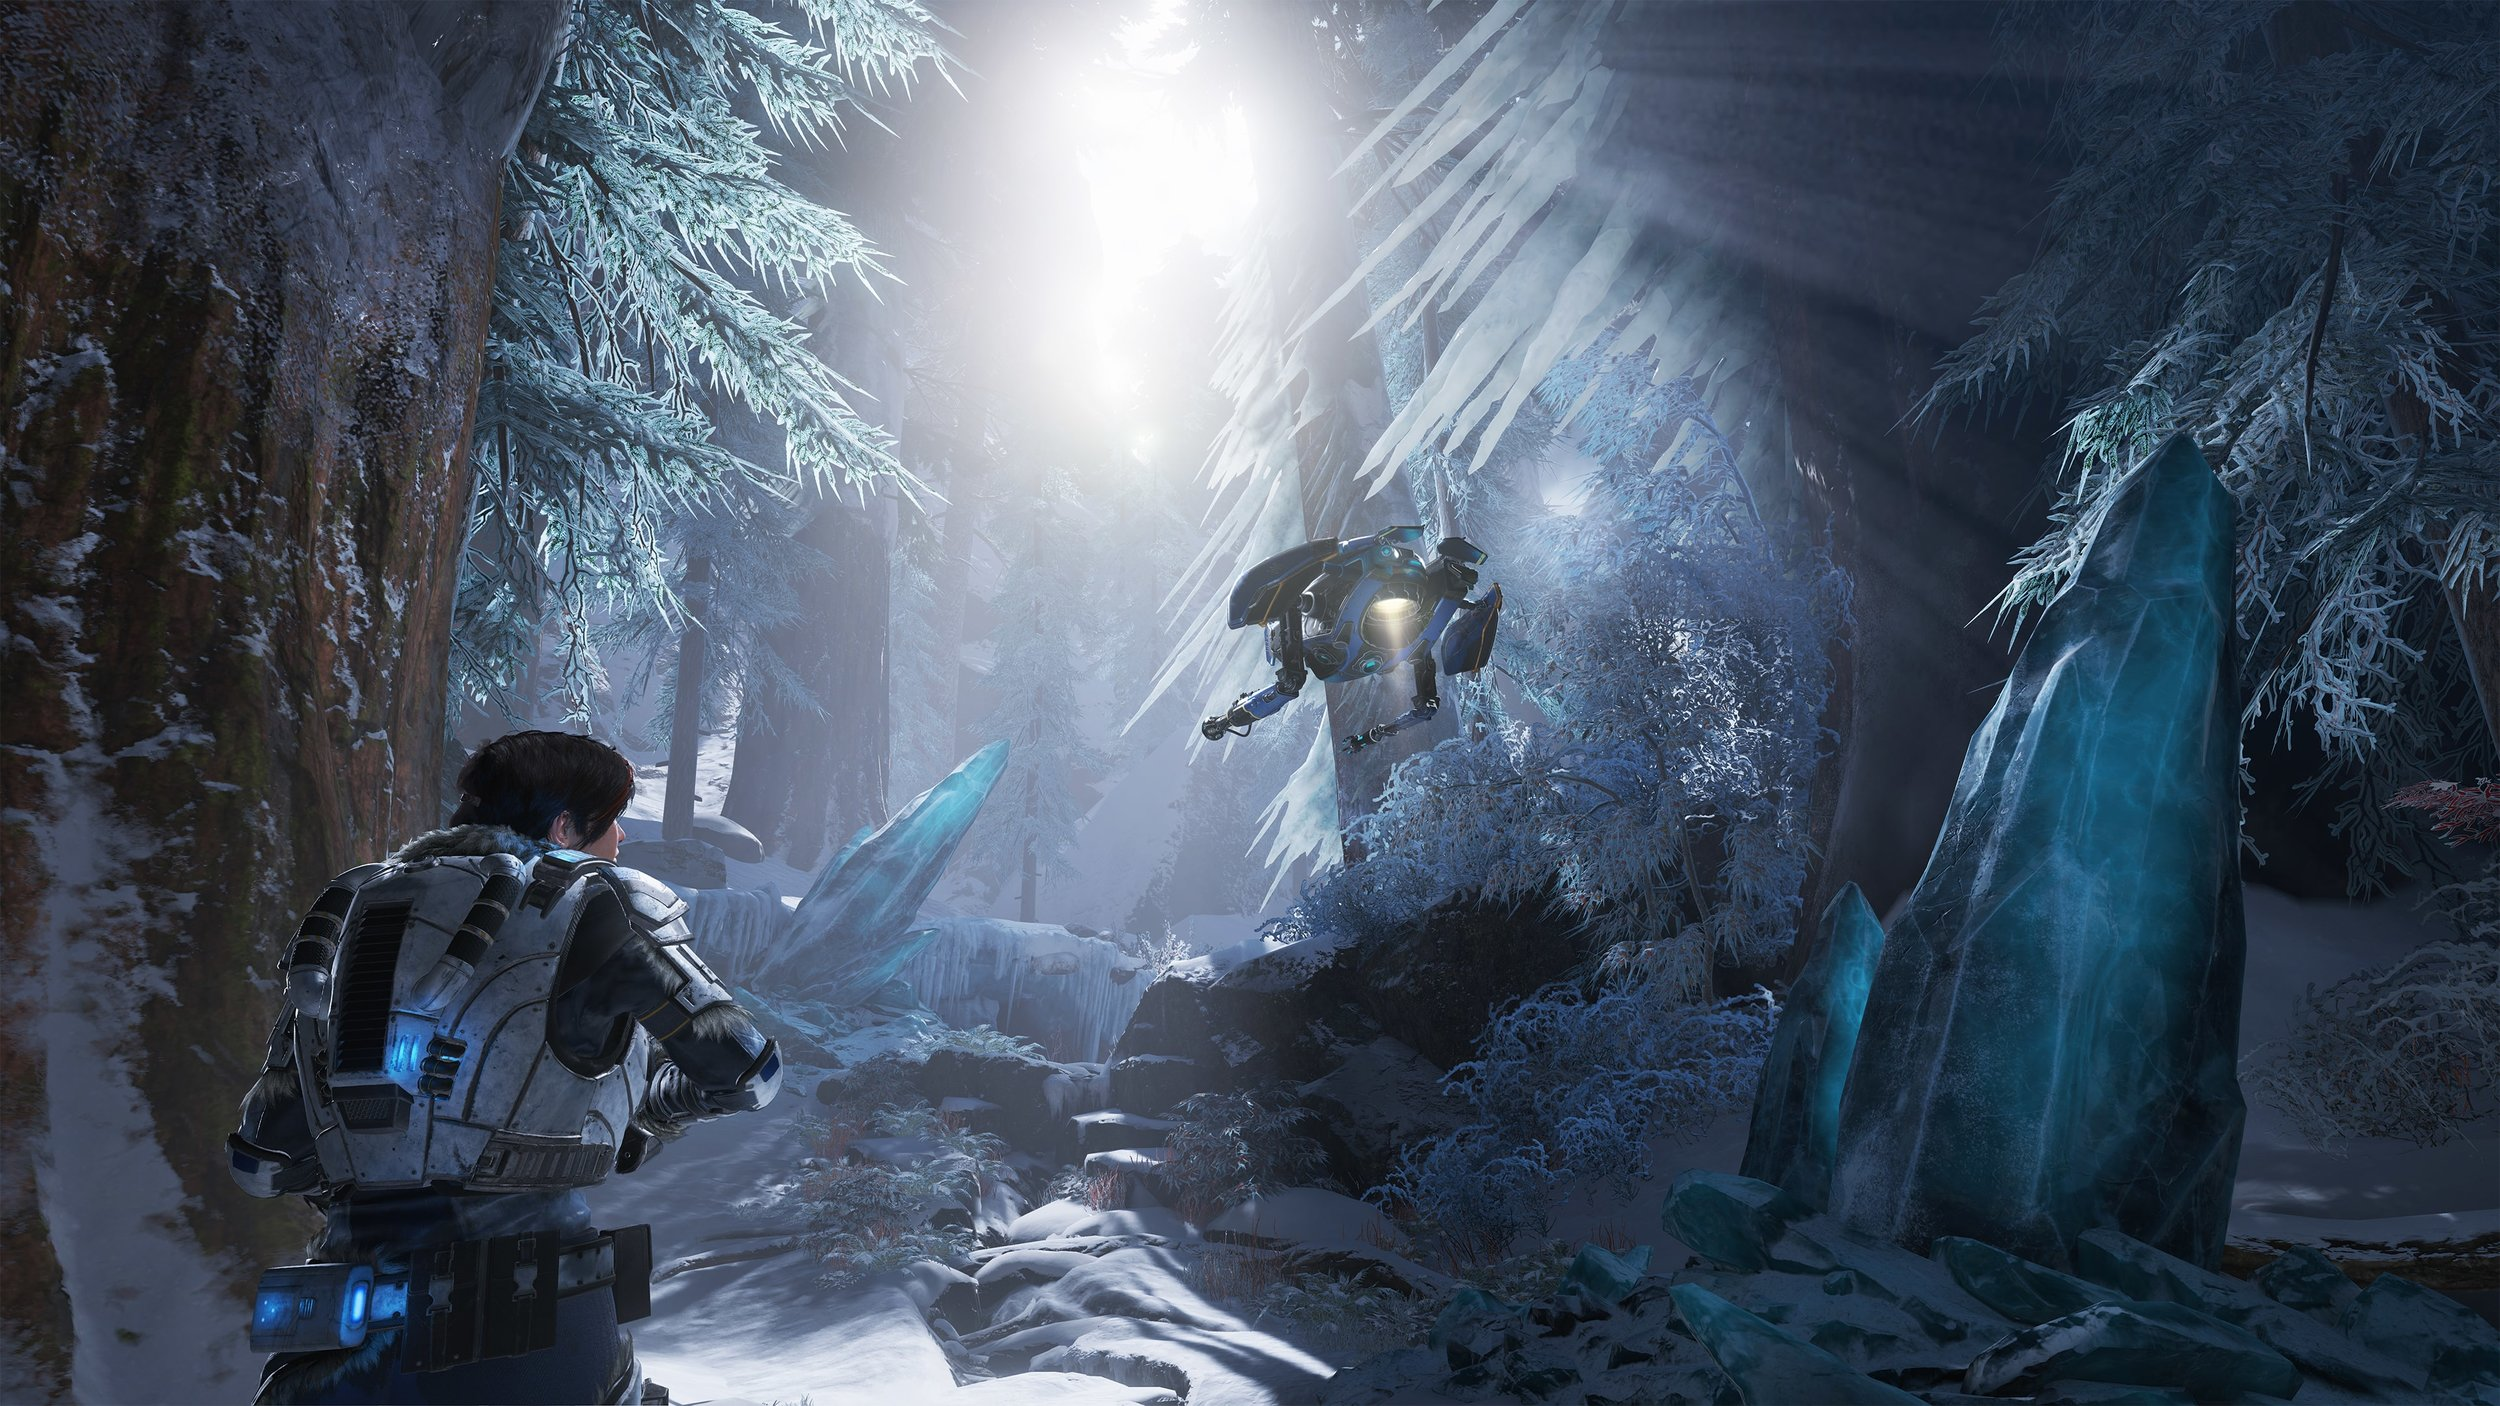 Gears-5-_Ice-Forest-min.jpg